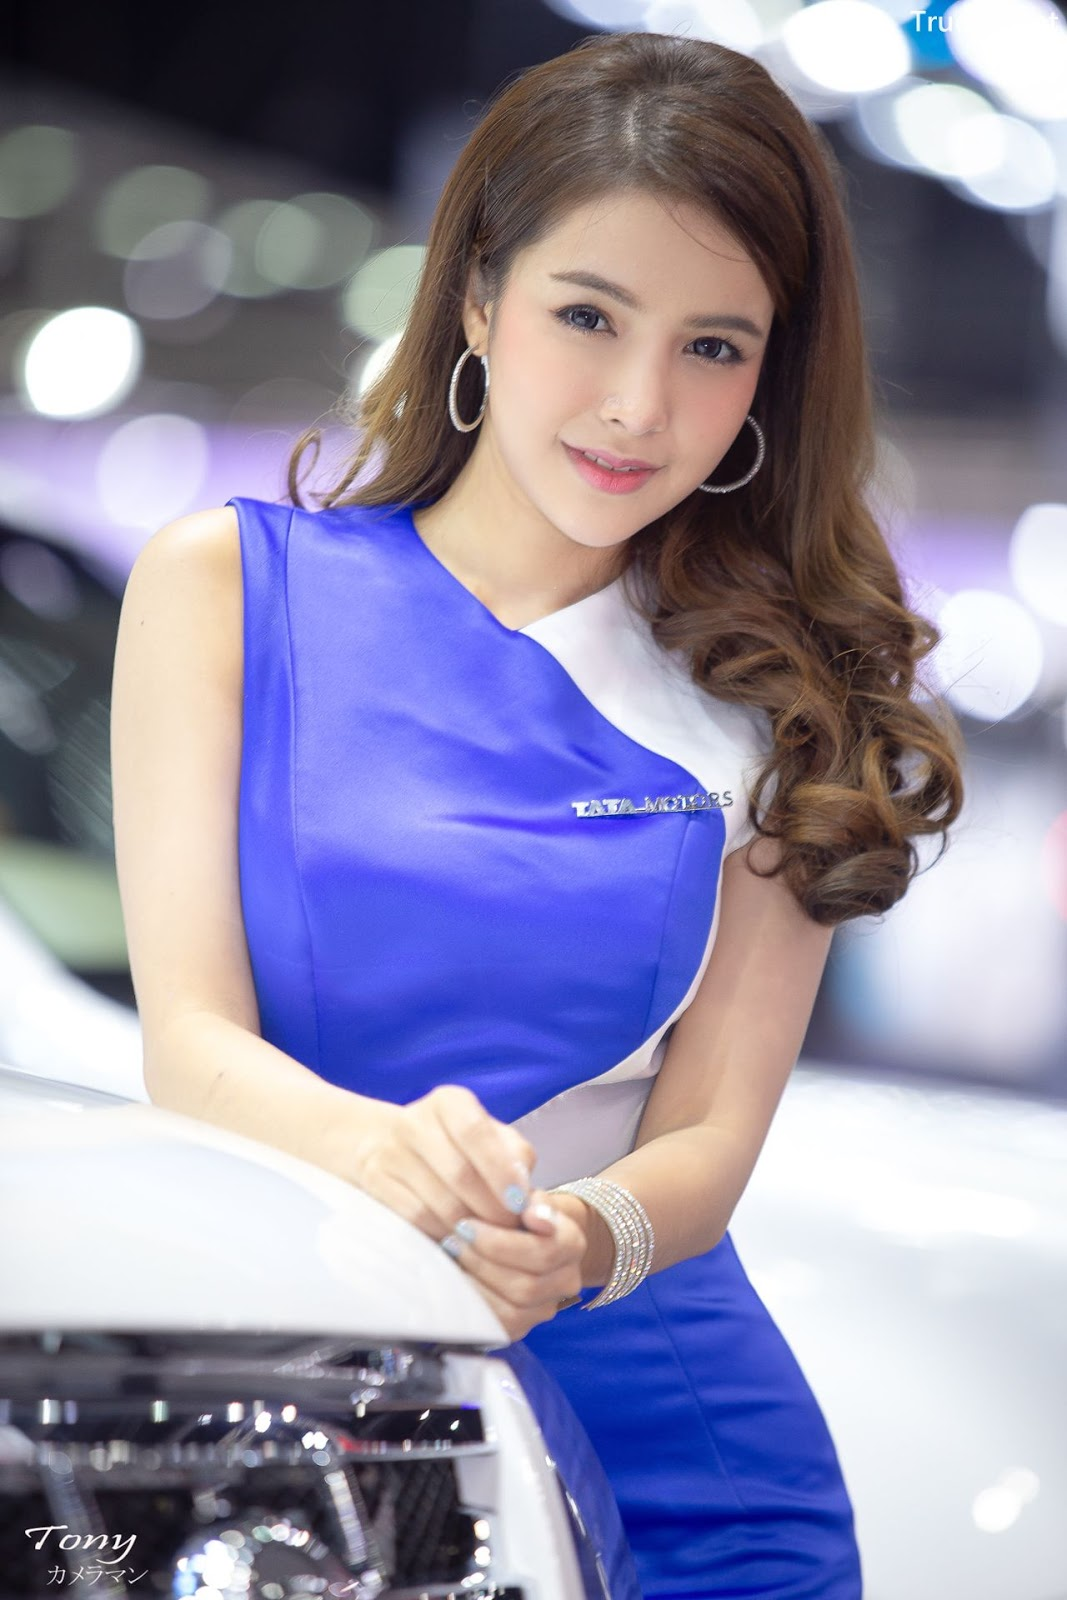 Image-Thailand-Hot-Model-Thai-Racing-Girl-At-Motor-Expo-2019-TruePic.net- Picture-7